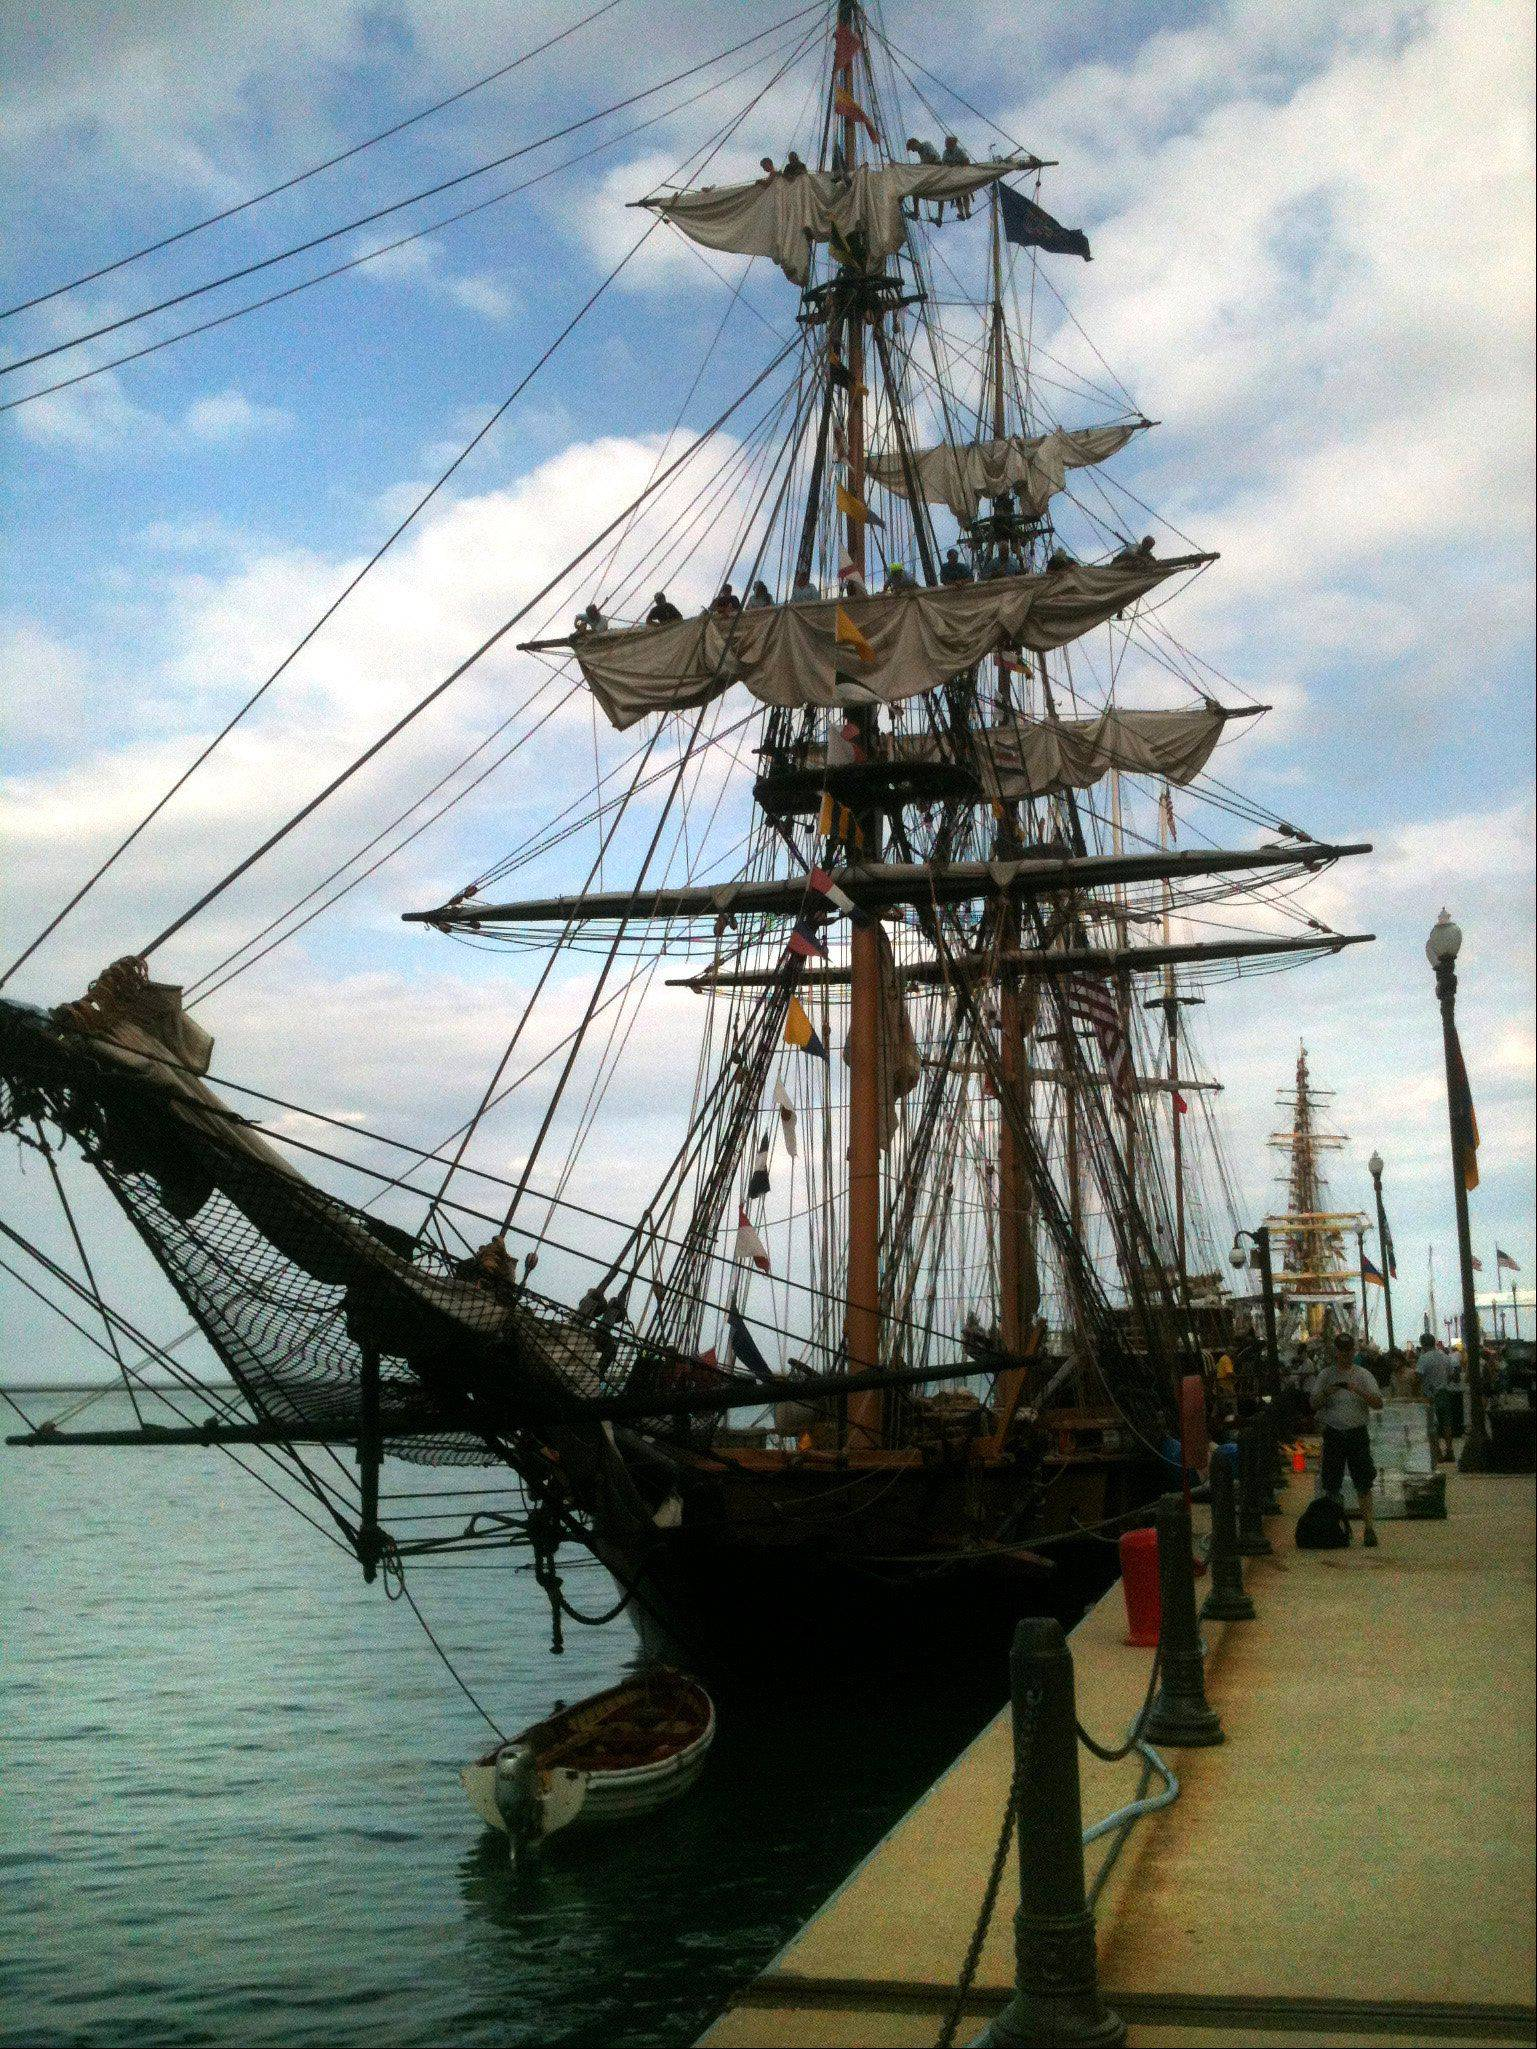 The Flagship Niagara, from Erie, Pa, is docked off Navy Pier in Chicago as the Tall Ships Chicago festival begins Wednesday. The festival, featuring the ships as well as the Chicago Match Cup sailing race, plus entertainment and activities for kids, runs through Sunday.